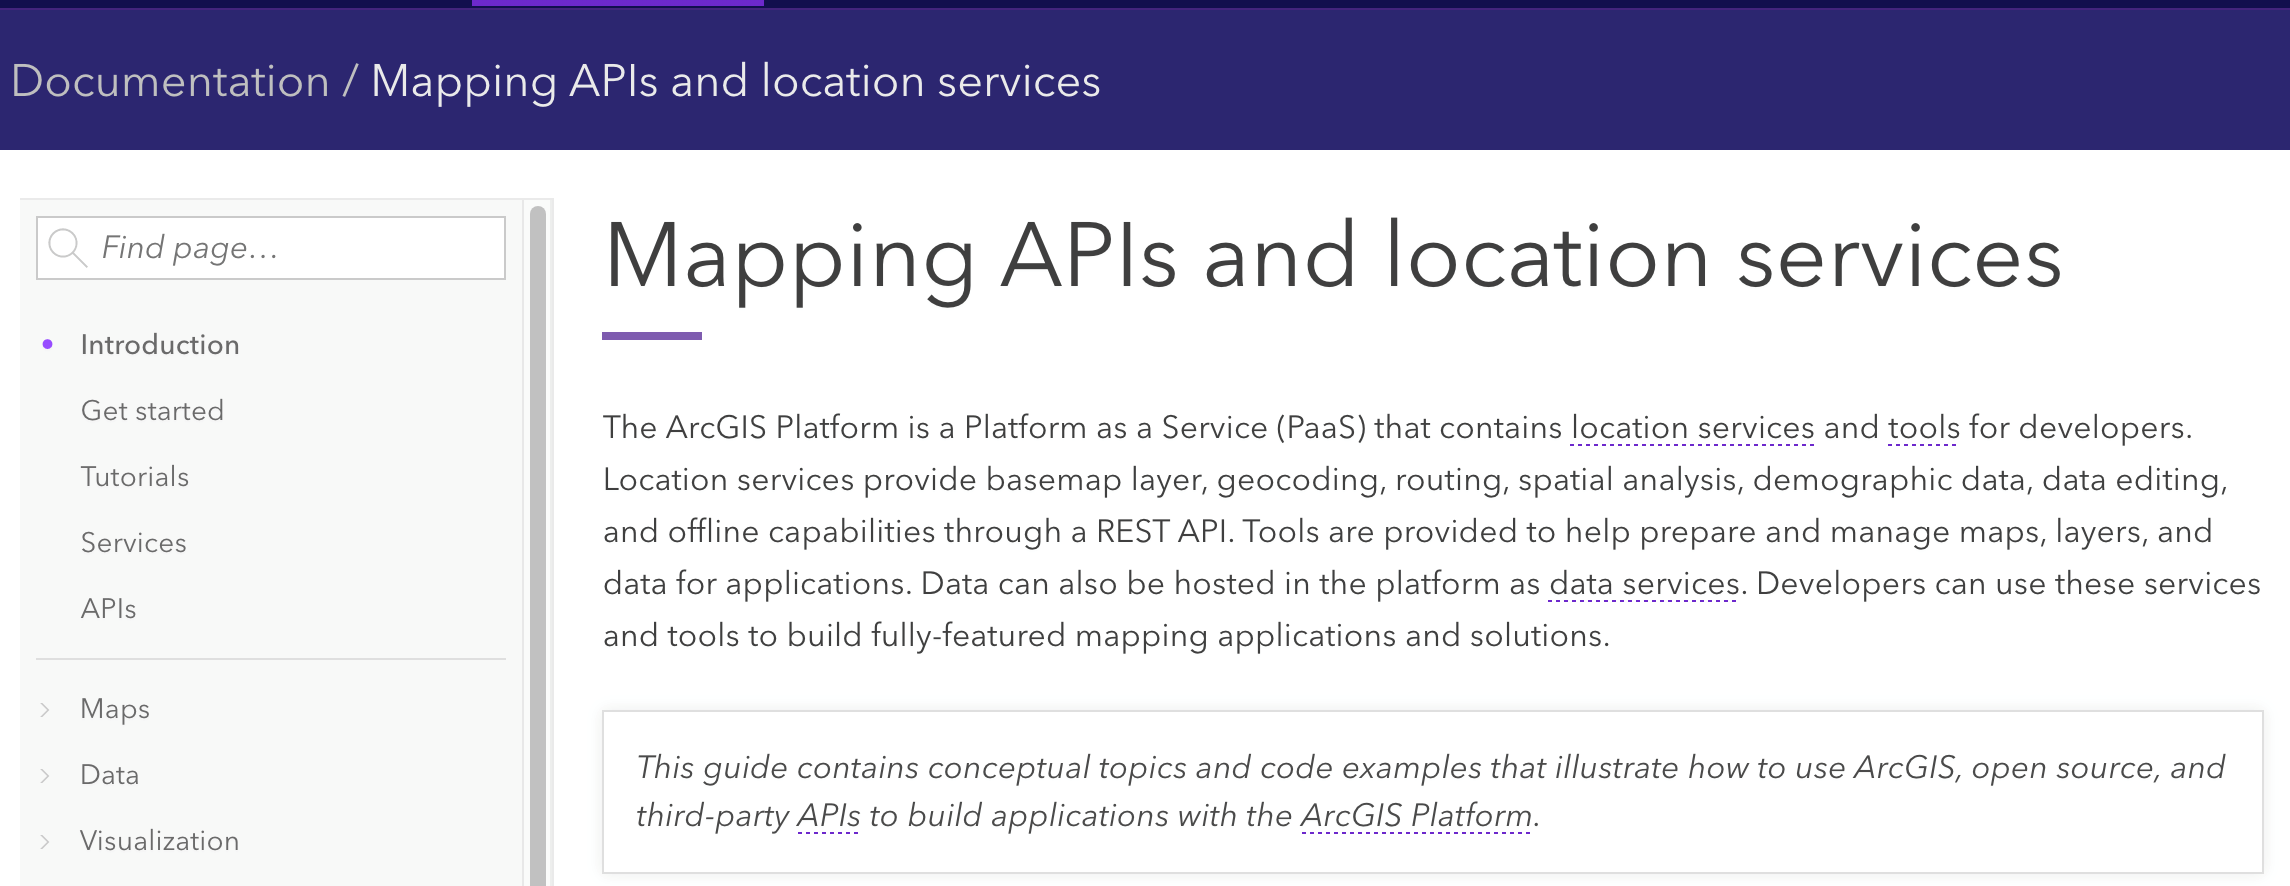 Mapping APIs and location services